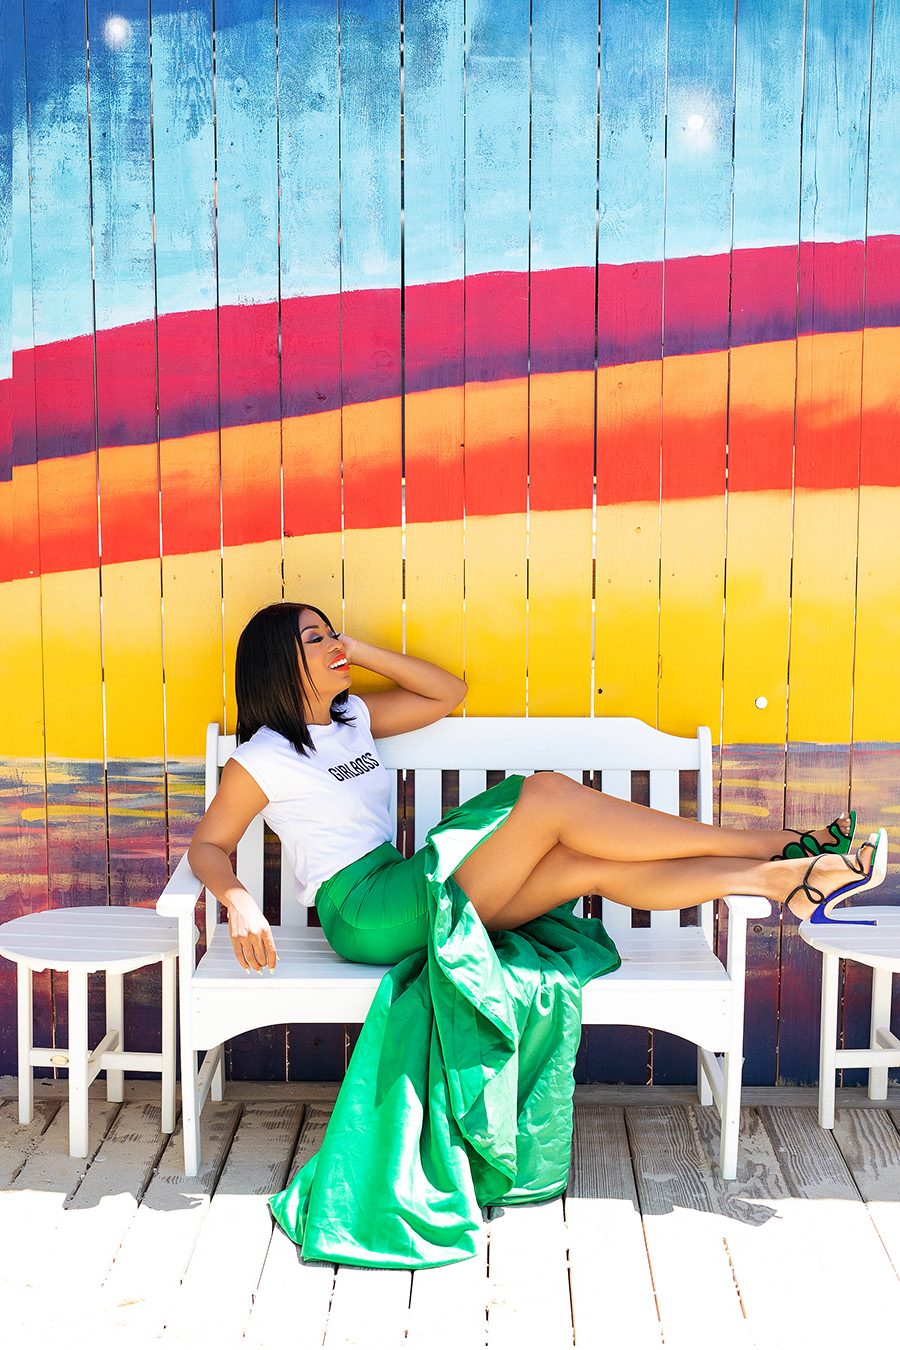 Statement green skirt and graphic tee with rainbow mural